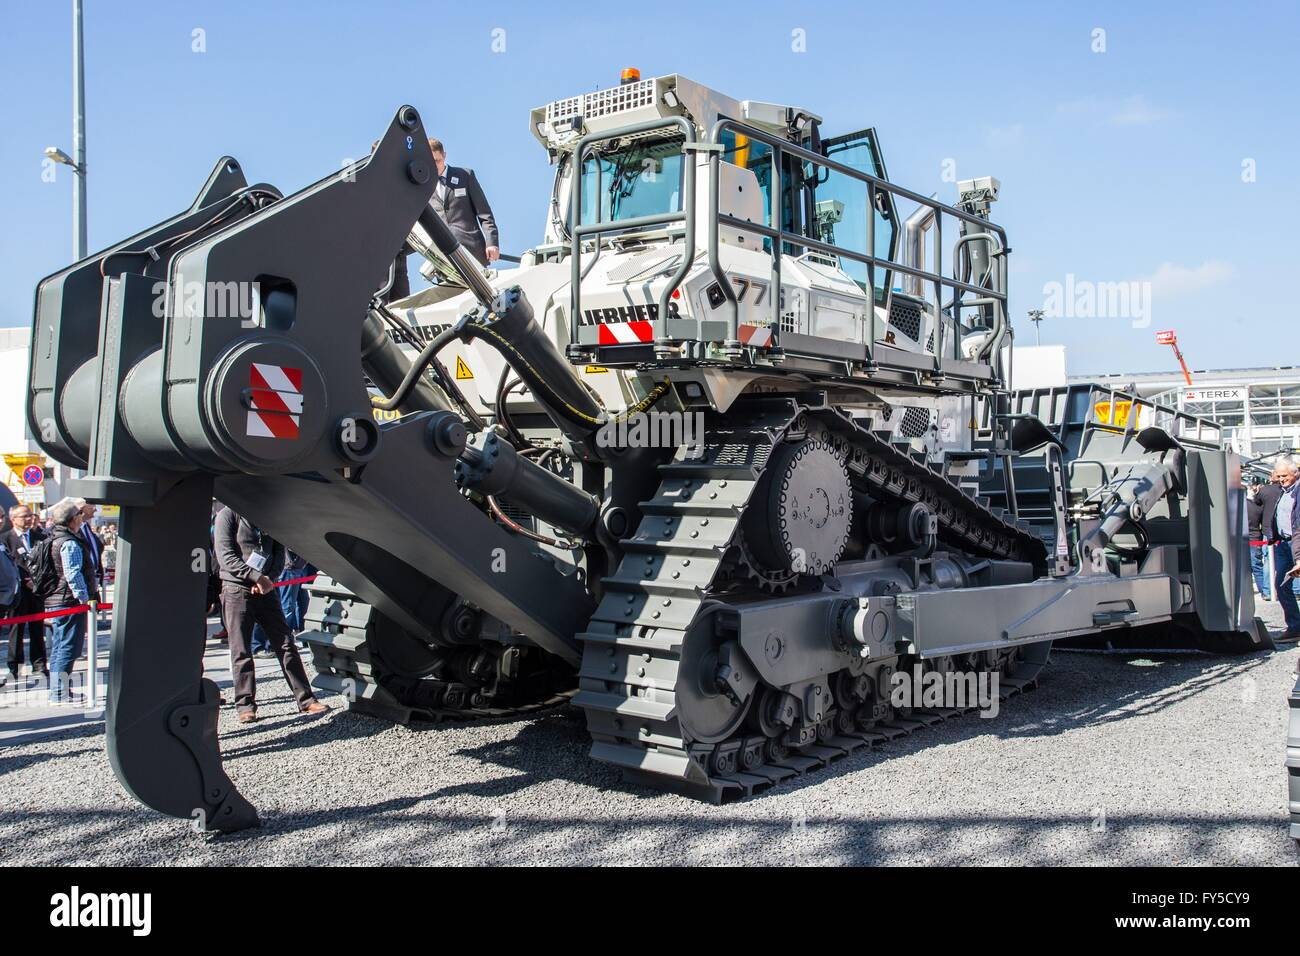 bauma 2016 exhibition: Liebherr's largest dozer, the PR 776 with Delta  tracks, Munich, Apr. 11, 2016.